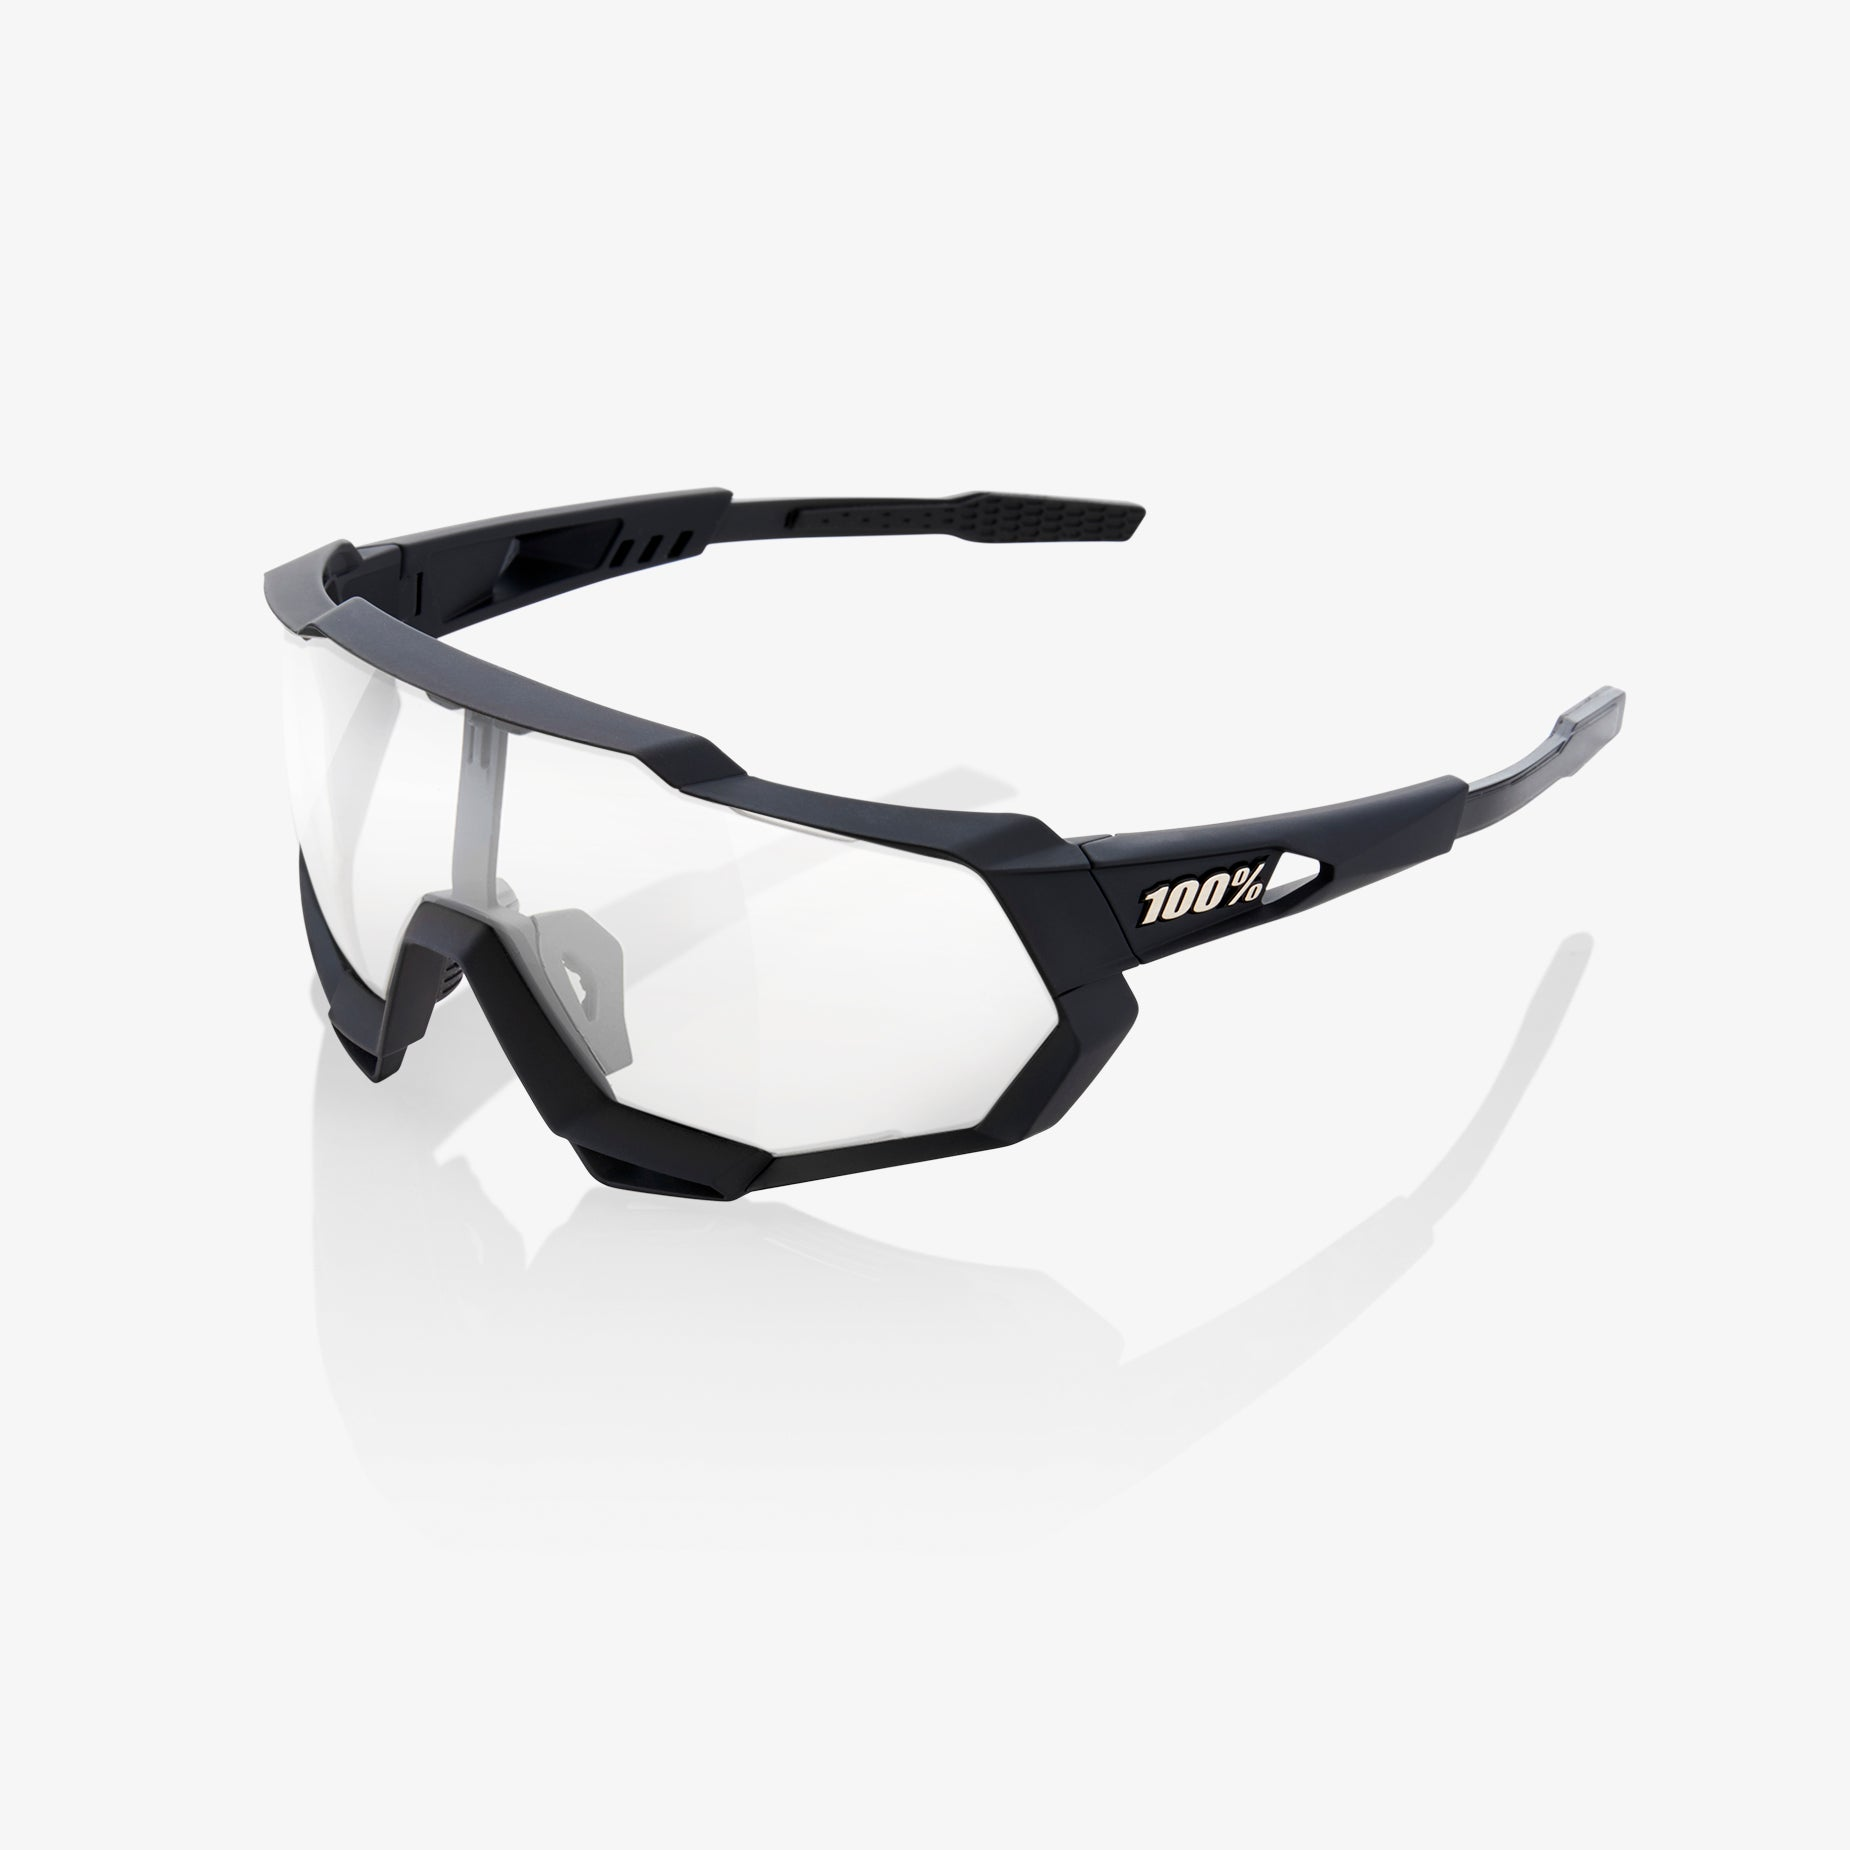 NEW 100/% Speedtrap Soft Tact Black-Hiper Red Mirror Sunglasses 61023-100-43